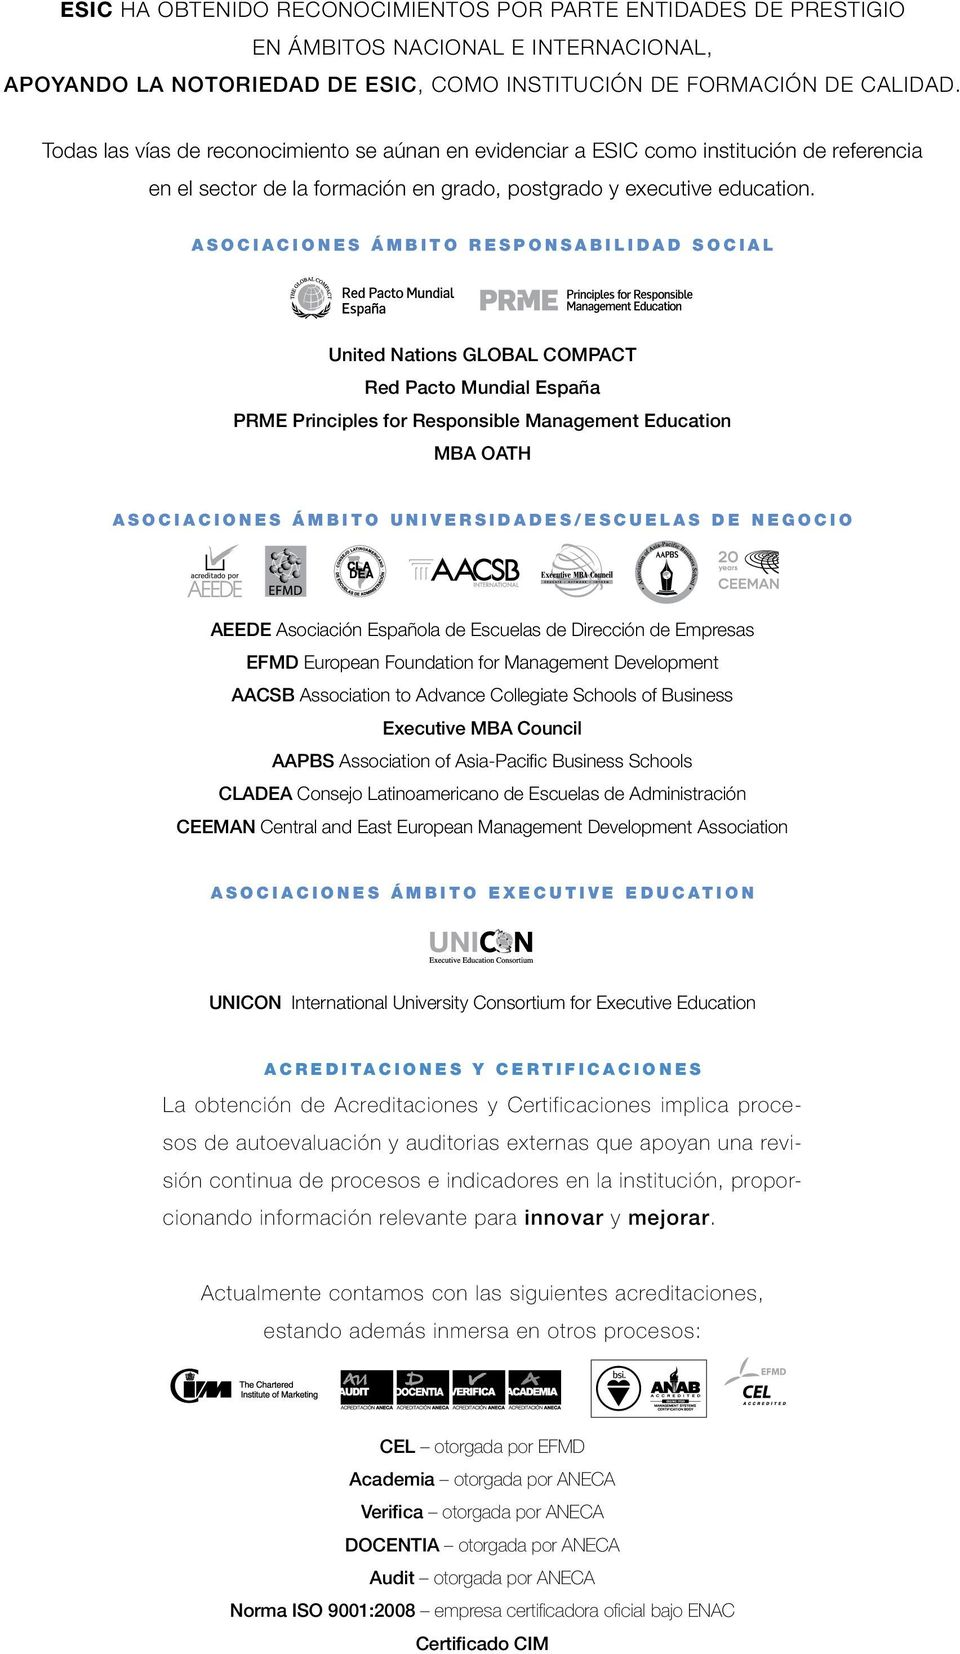 ASOCIACIONES ÁMBITO RESPONSABILIDAD SOCIAL United Nations GLOBAL COMPACT Red Pacto Mundial España PRME Principles for Responsible Management Education MBA OATH ASOCIACIONES ÁMBITO